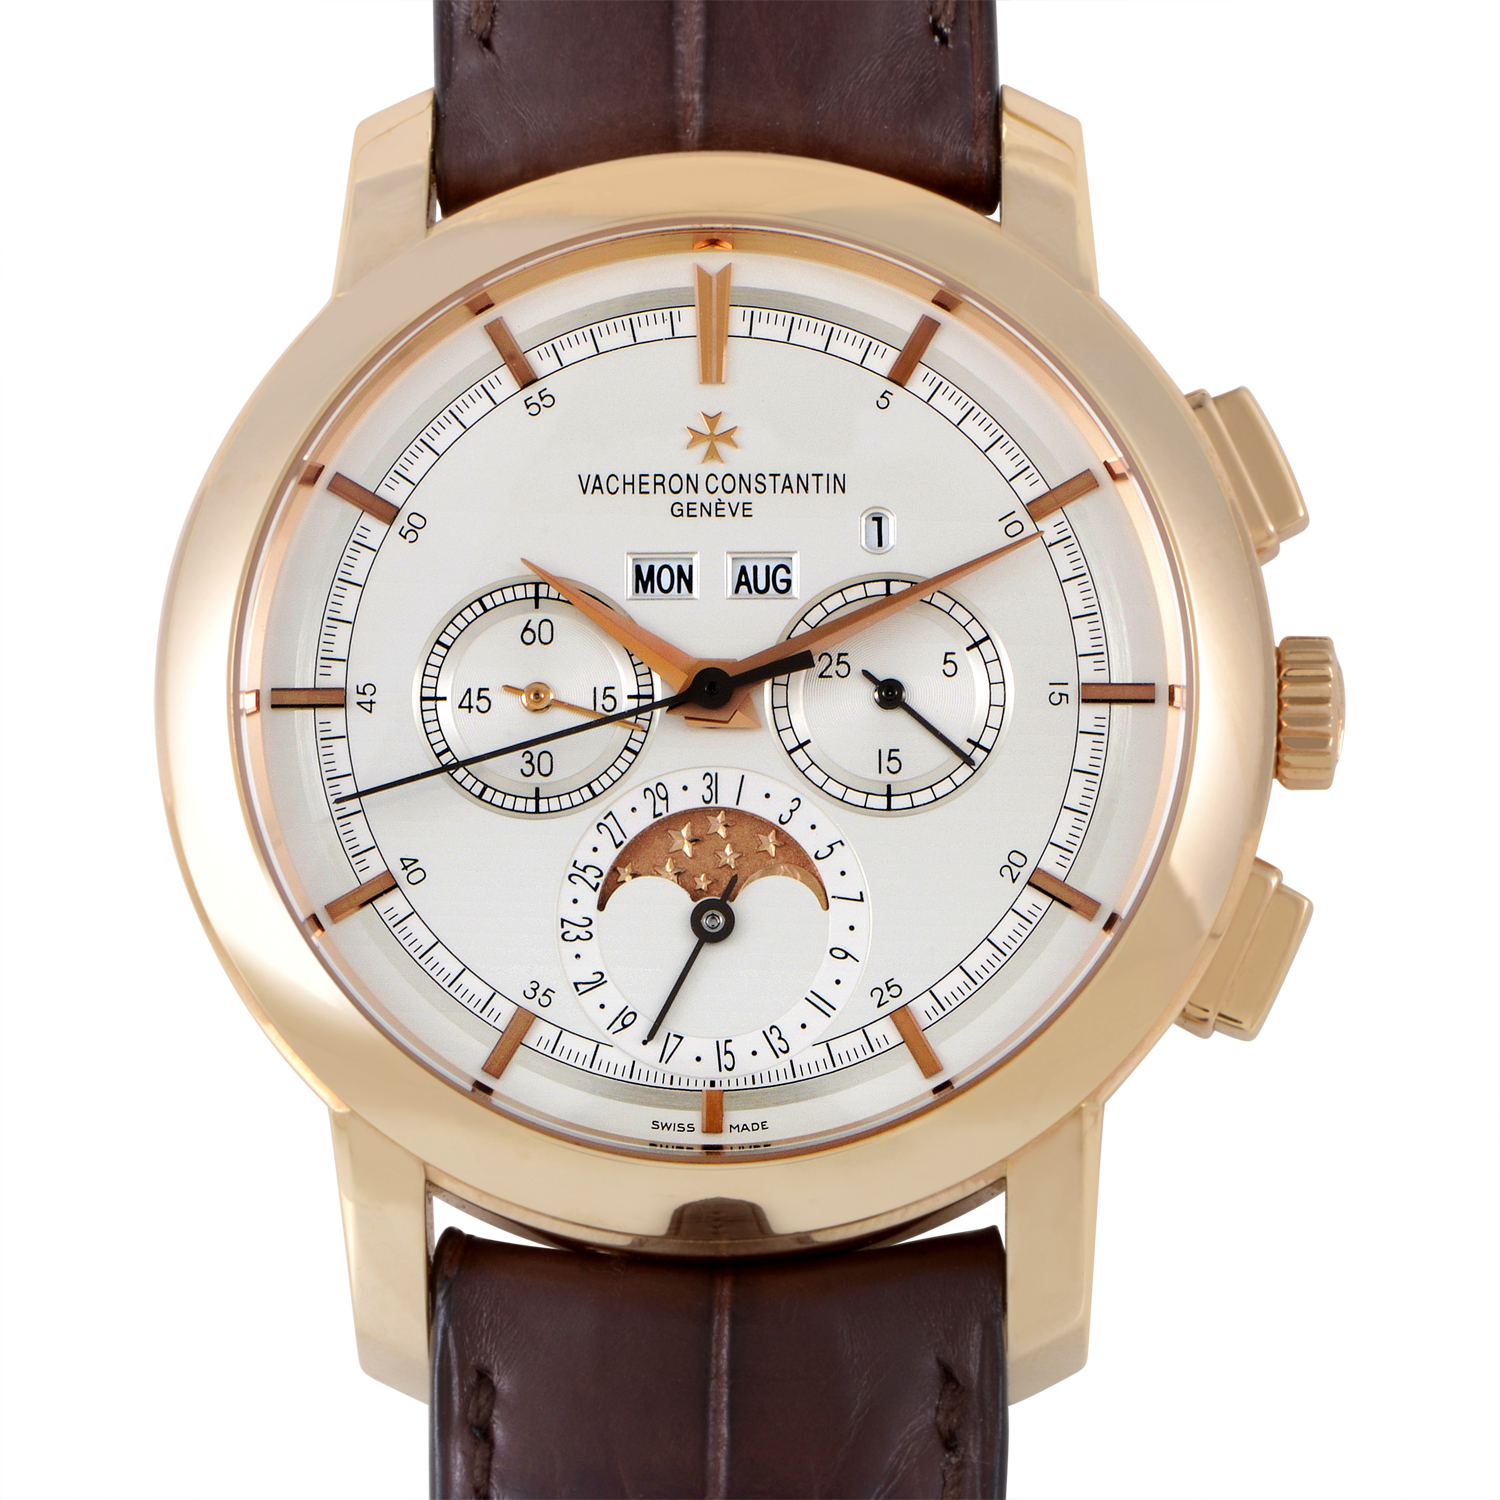 Patrimony Traditionelle Perpetual Calendar Chronograph 47292/000R-9392